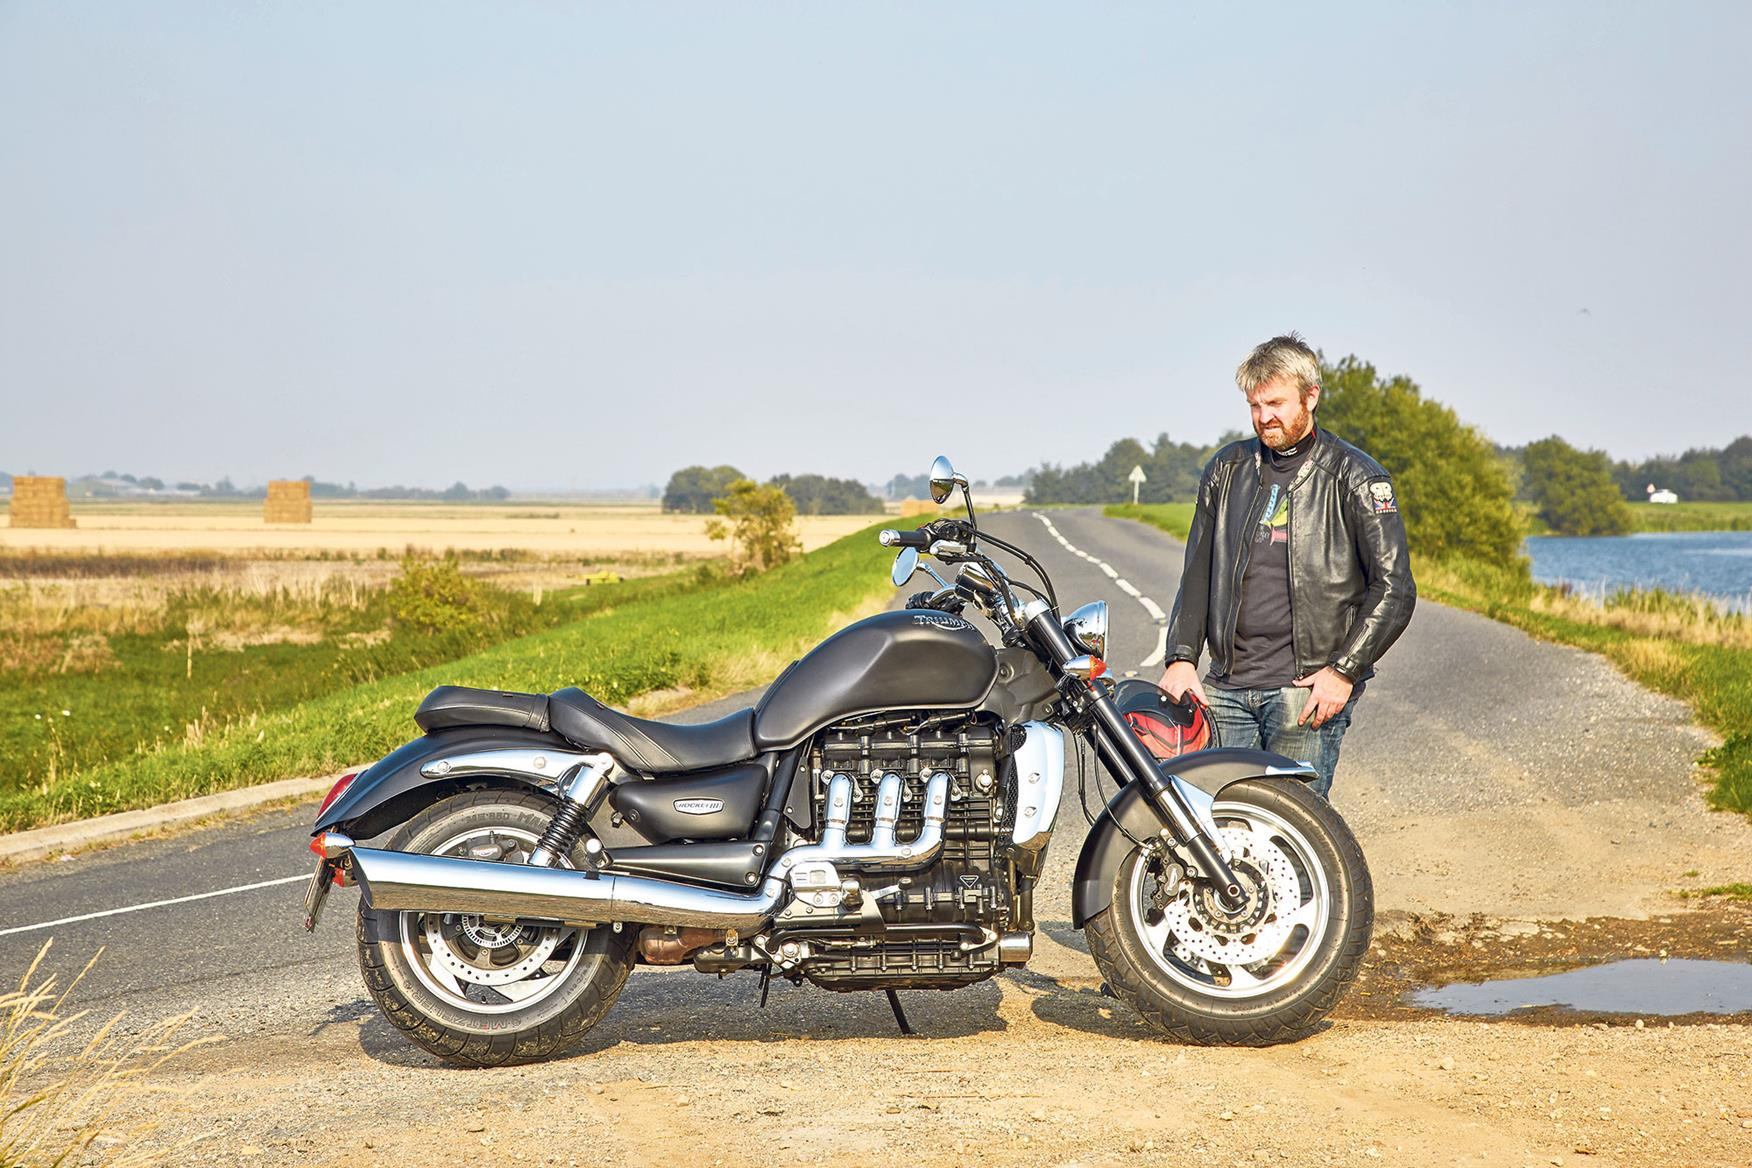 The Triumph Rocket III static